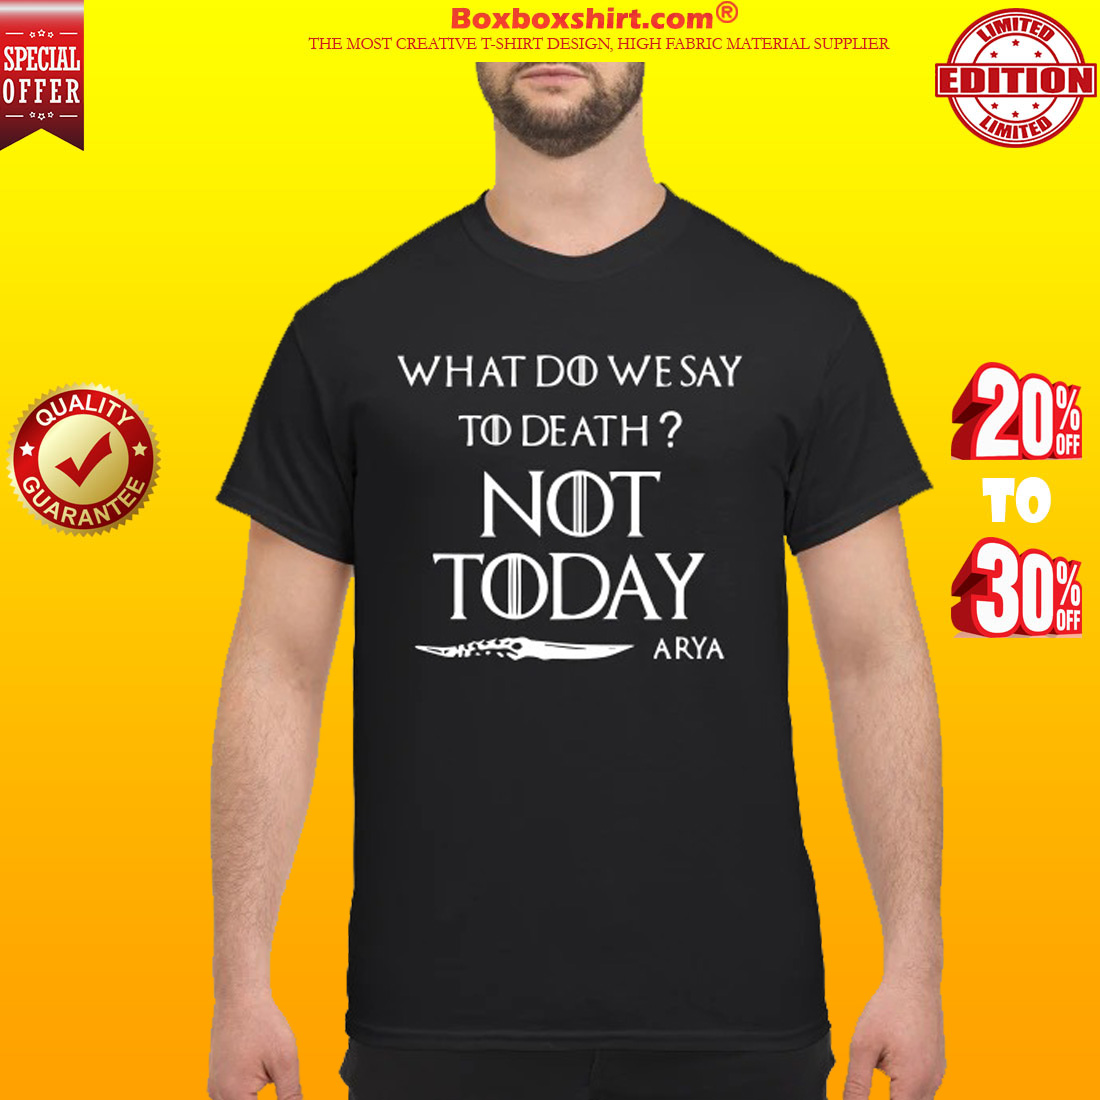 What do we say to death not day Arya classic shirt